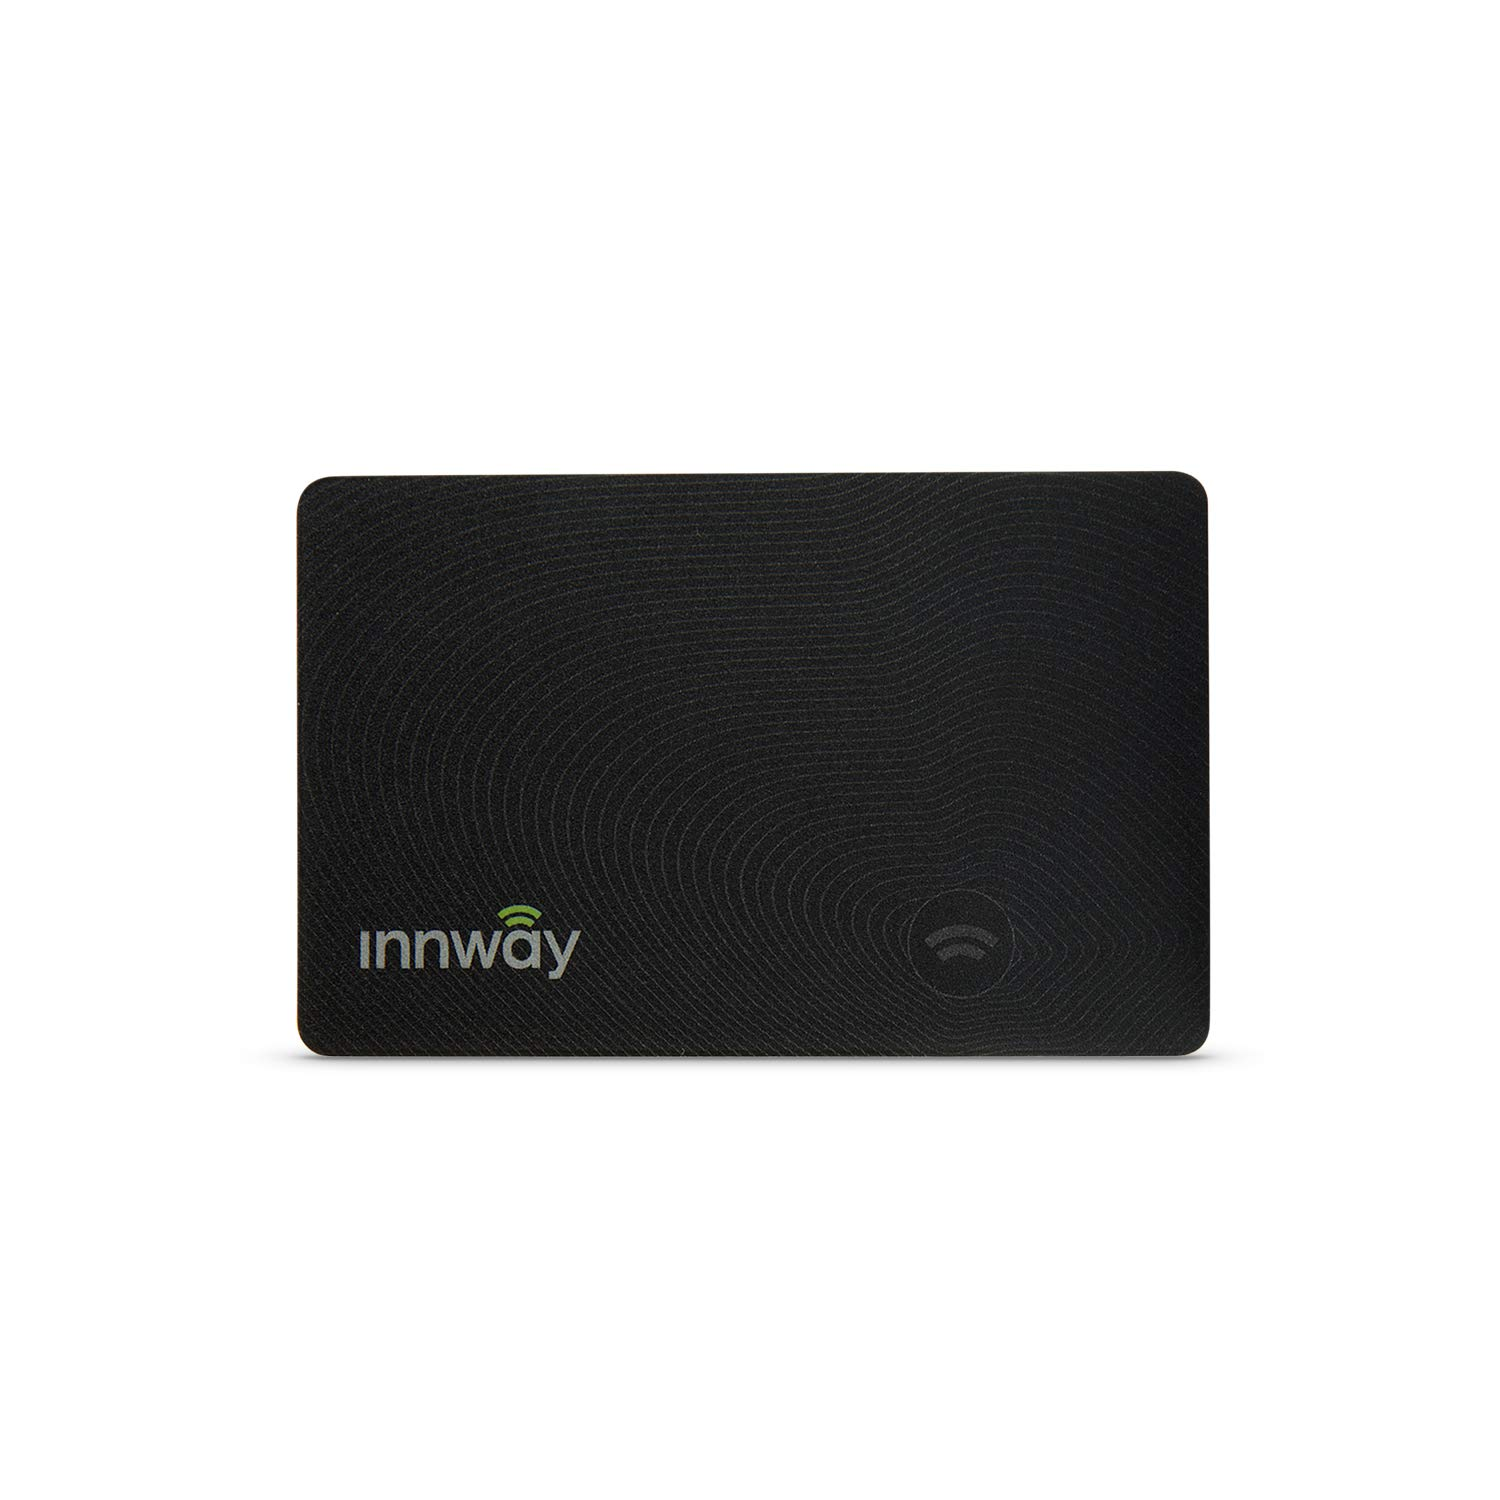 Innway Card - Ultra Thin Rechargeable Bluetooth Tracker Finder. Find Your Wallet, Bag, Backpack, Keys, Laptop, Tablet (Black) by innway